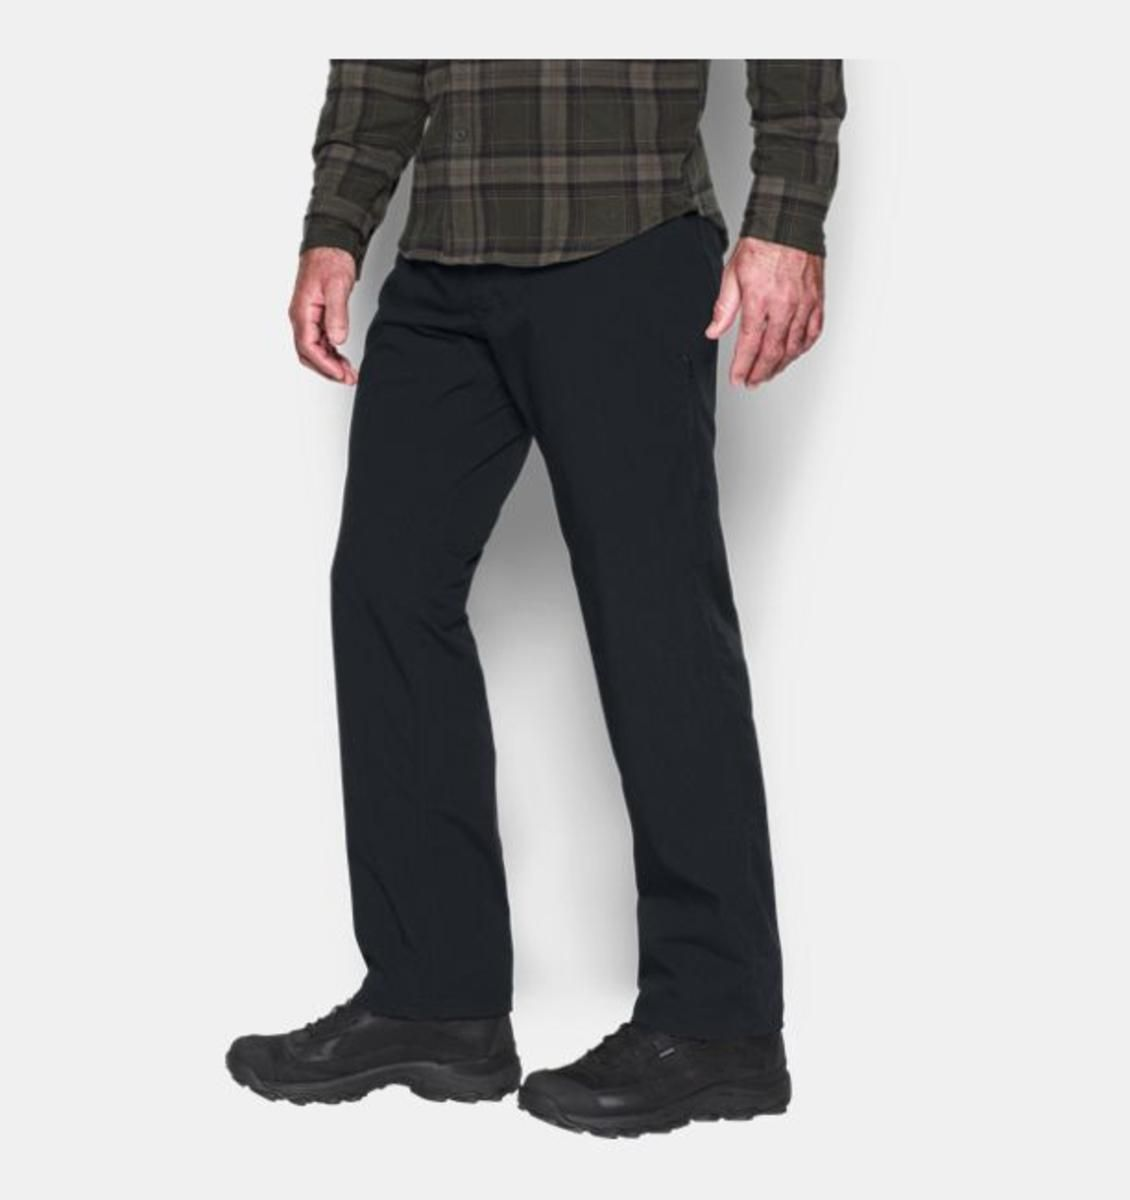 0af29ba2bc8fb Under Armour Men's UA Storm Covert Tactical Pant - Cannon/Cannon - The  Warming Store